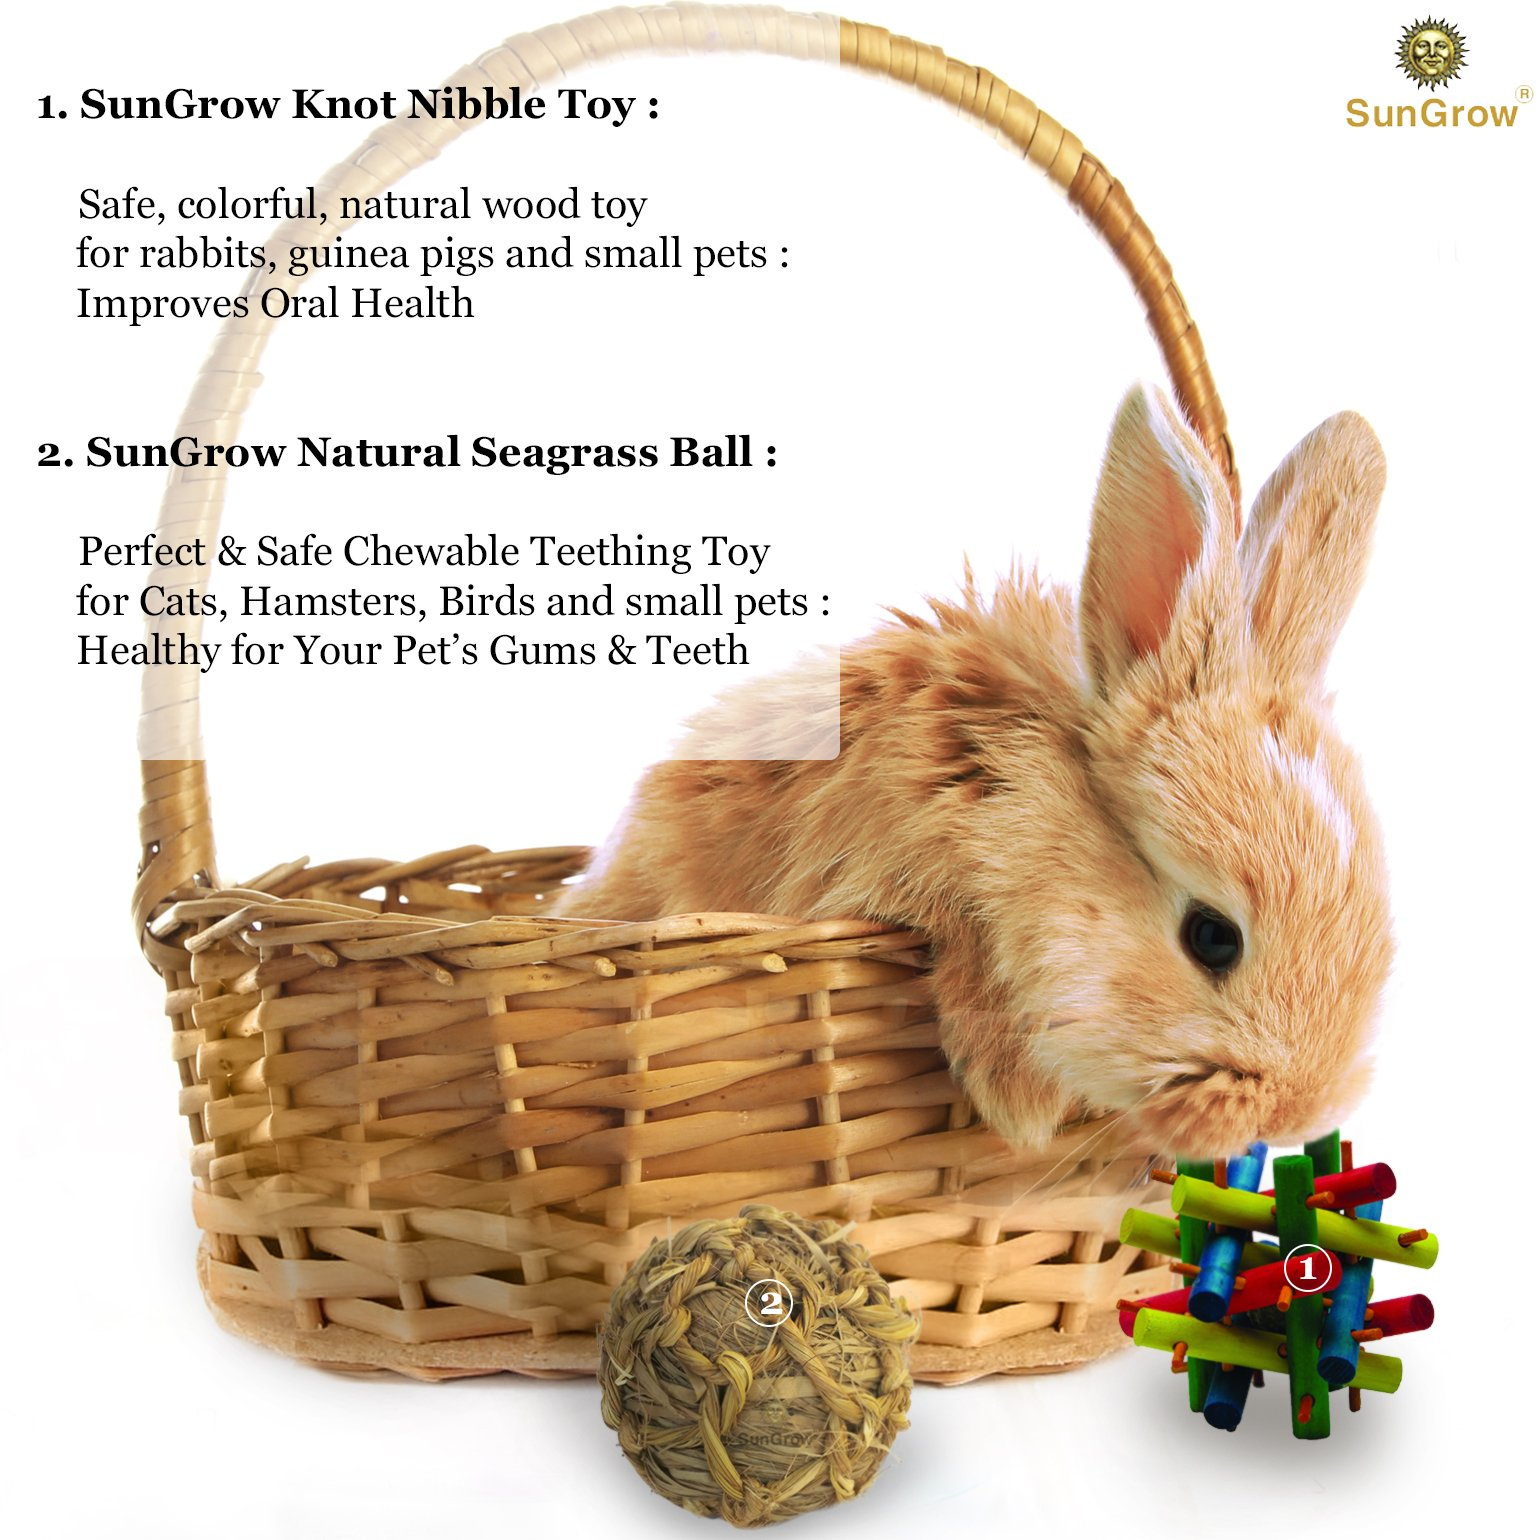 SunGrow Rabbit Wood Knot Nibble Toy: Suitable for Play and Chewing: Bright Colors: Natural Vegetable Dye: Provides stimulation & entertainment: For Rabbits, Guinea pigs & Chinchillas